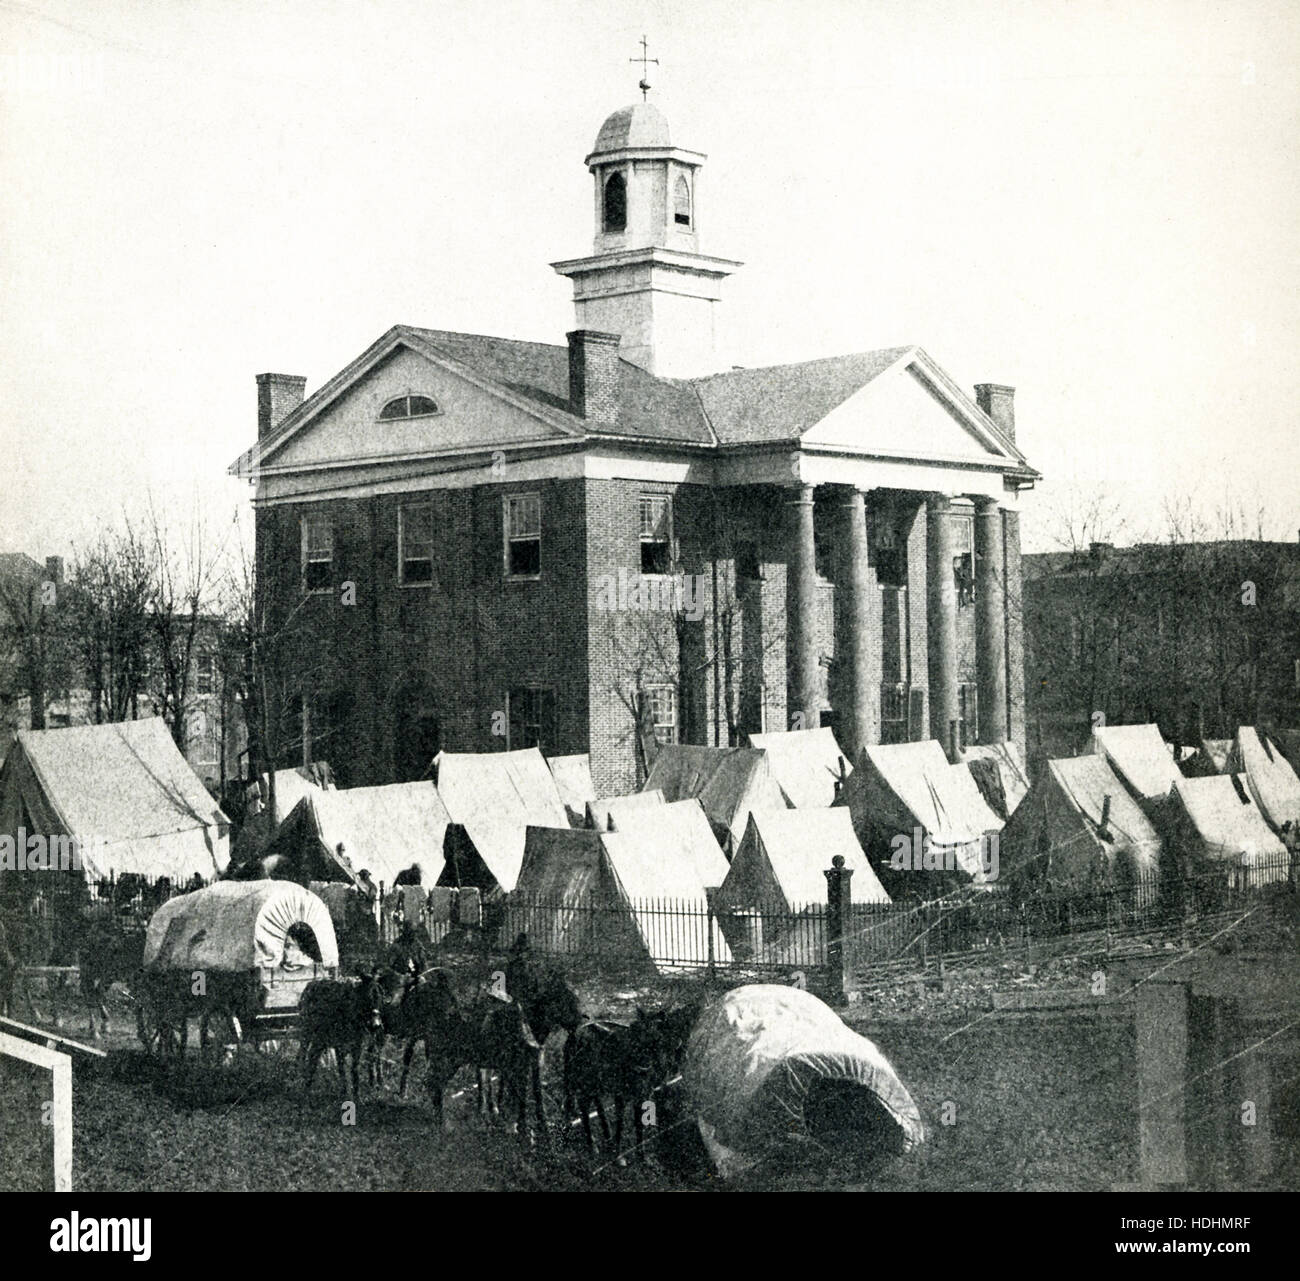 This is the only known photograph of the original courthouse on the Oxford Square in Oxford, Mississippi. It was - Stock Image